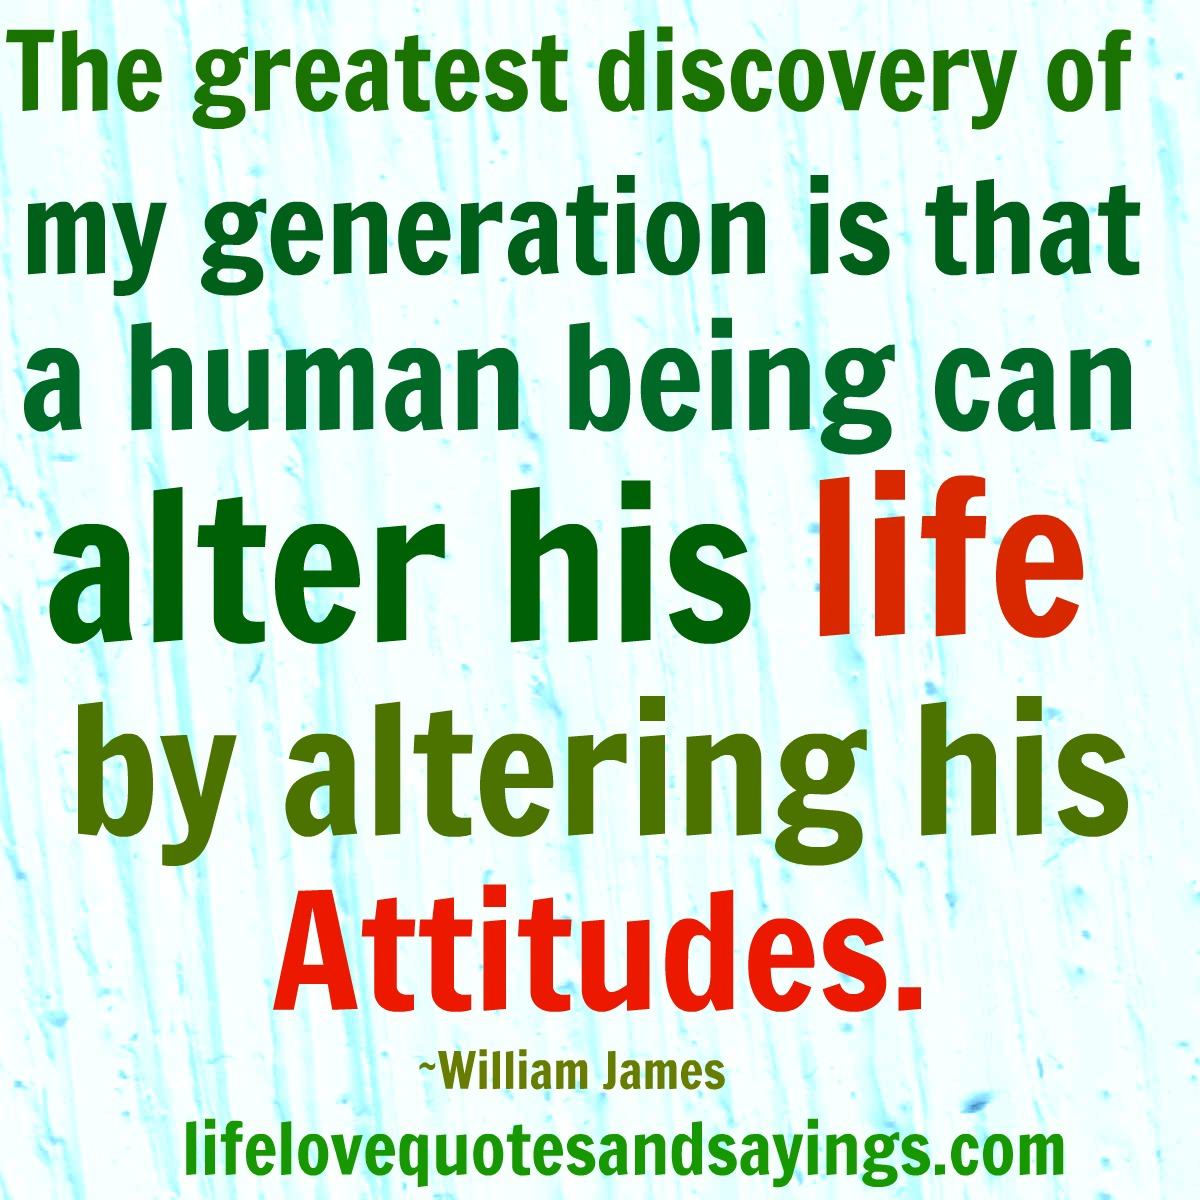 Best Quotes Good Human Being: Bad Attitude Quotes And Sayings. QuotesGram